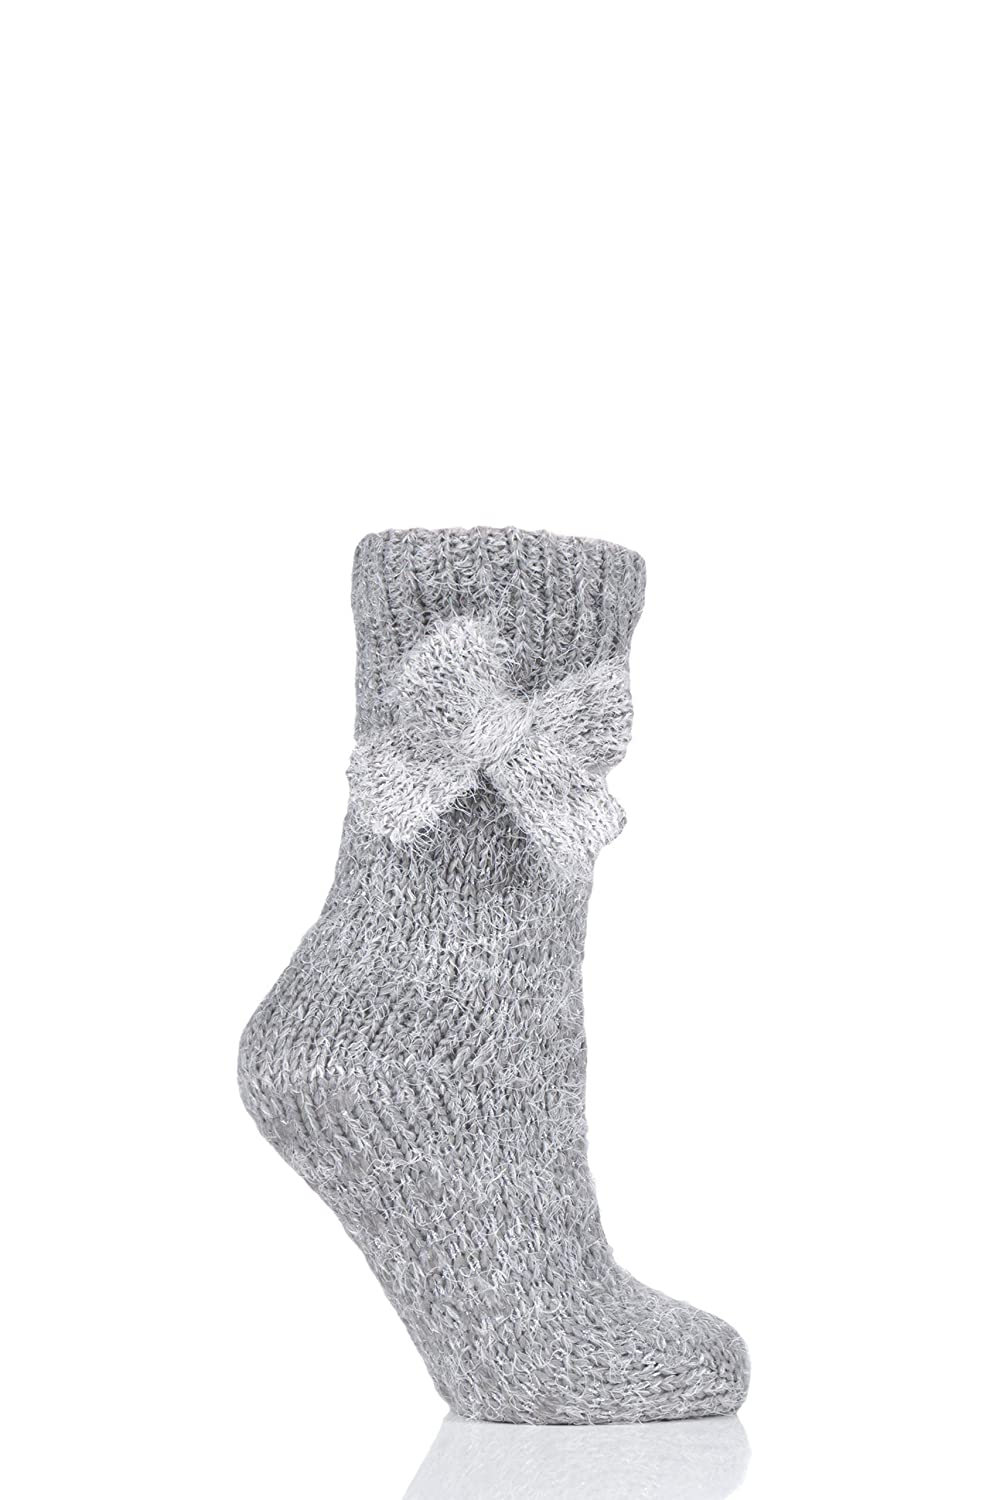 Totes Women Bow Sparkle Chunk Knit Socks Pack of 1